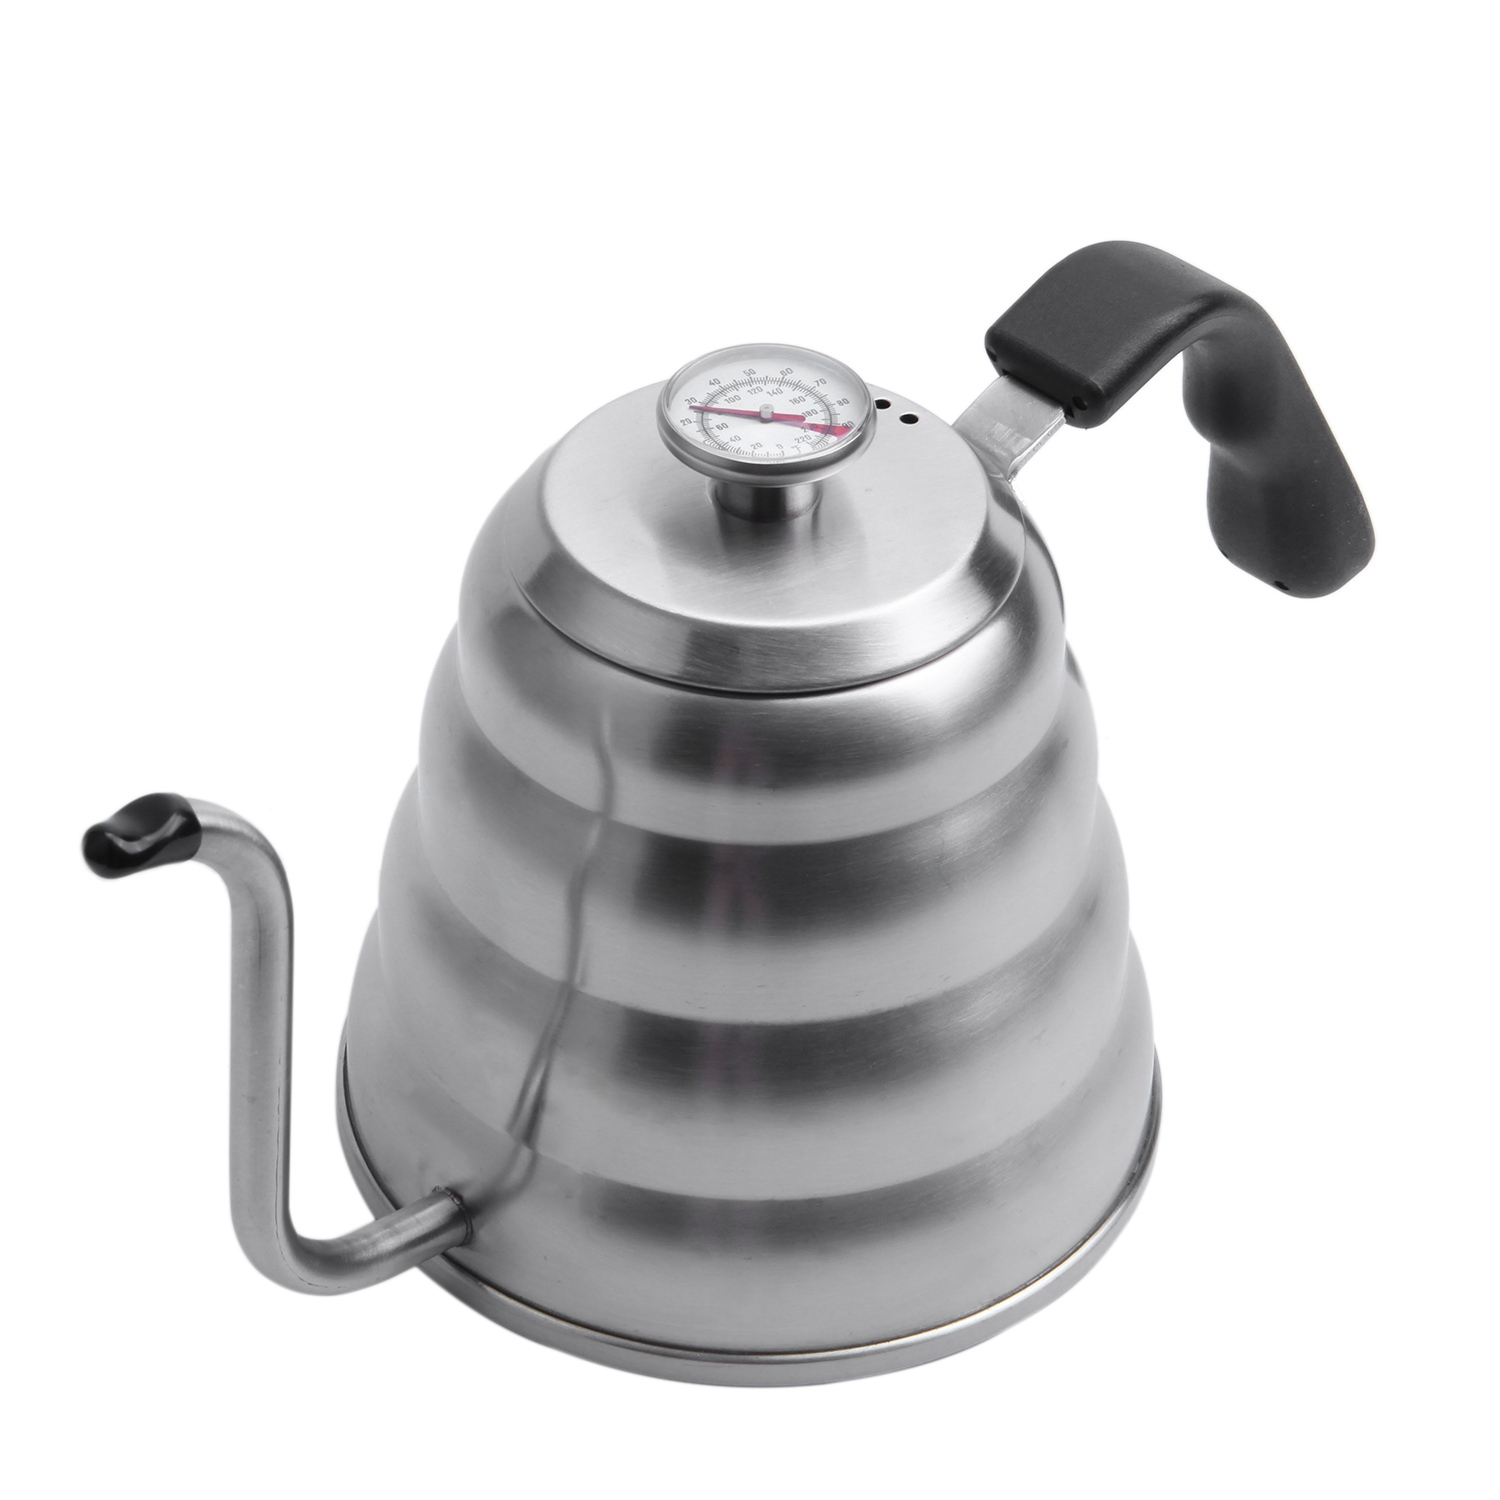 Premium Pour Over Coffee Kettle With For Precise Temperature 40floz - Gooseneck Tea Kettle - 5 Cup Stainless Steel Teapot For